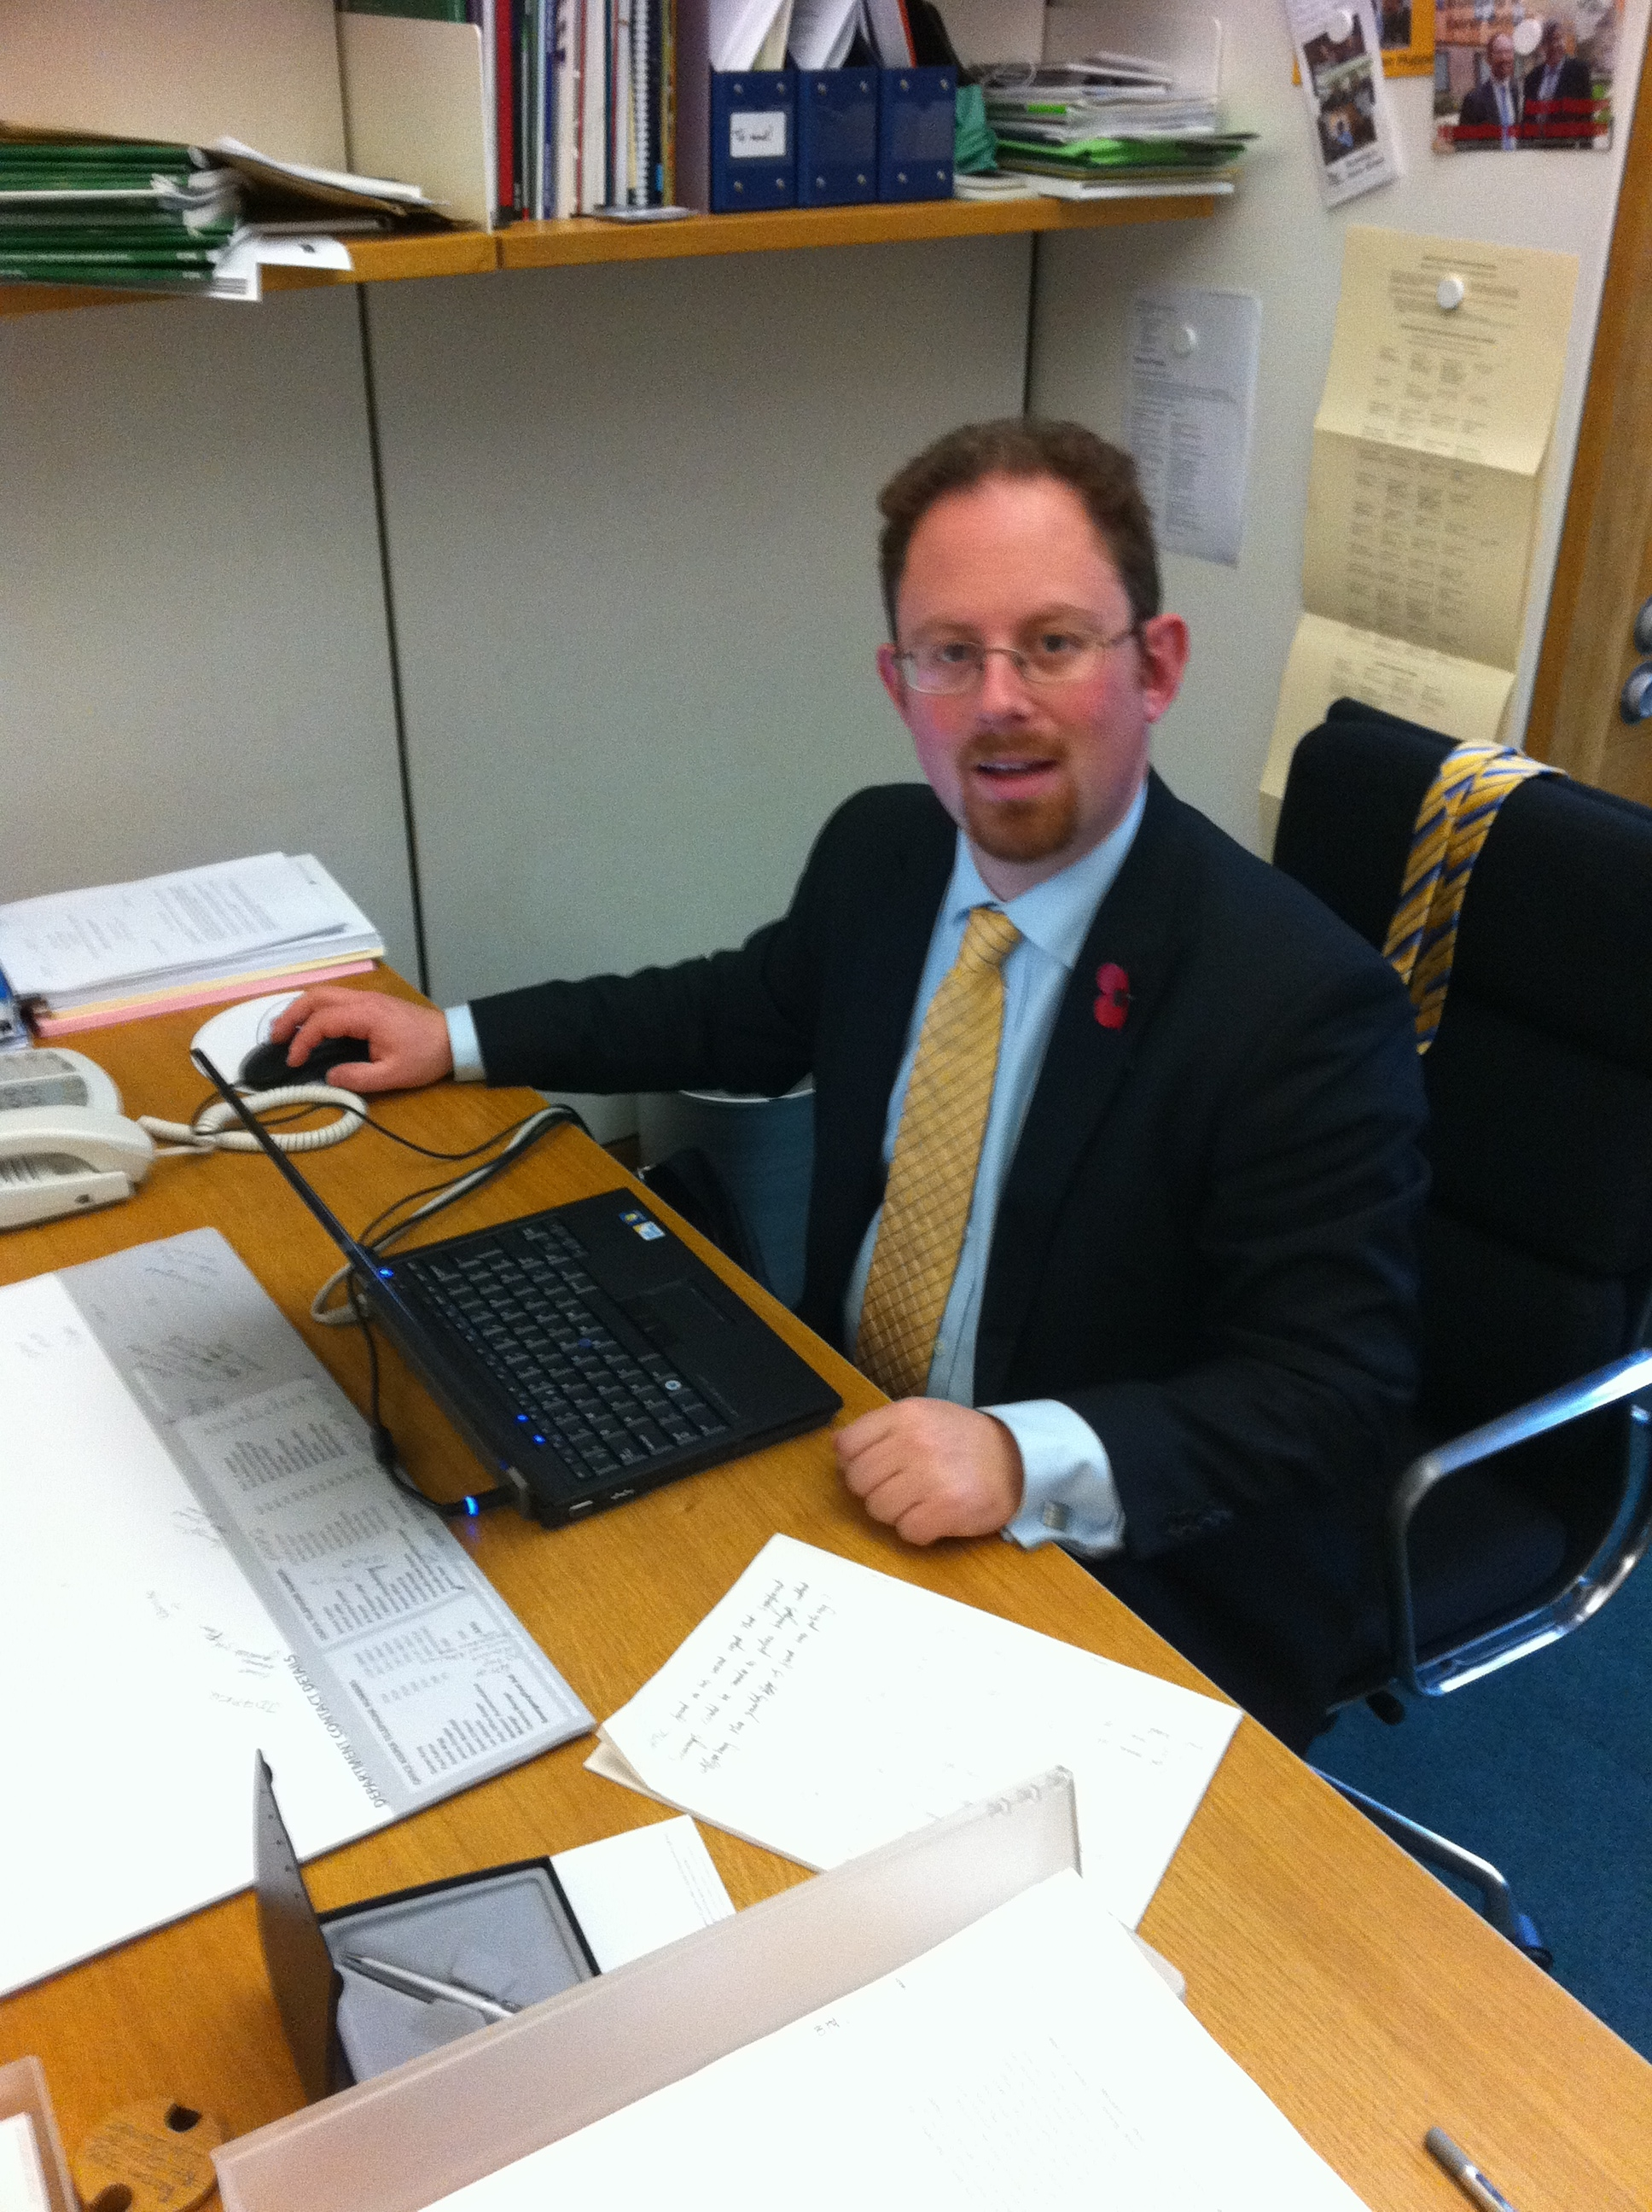 Julian_at_desk_in_Westminster.JPG